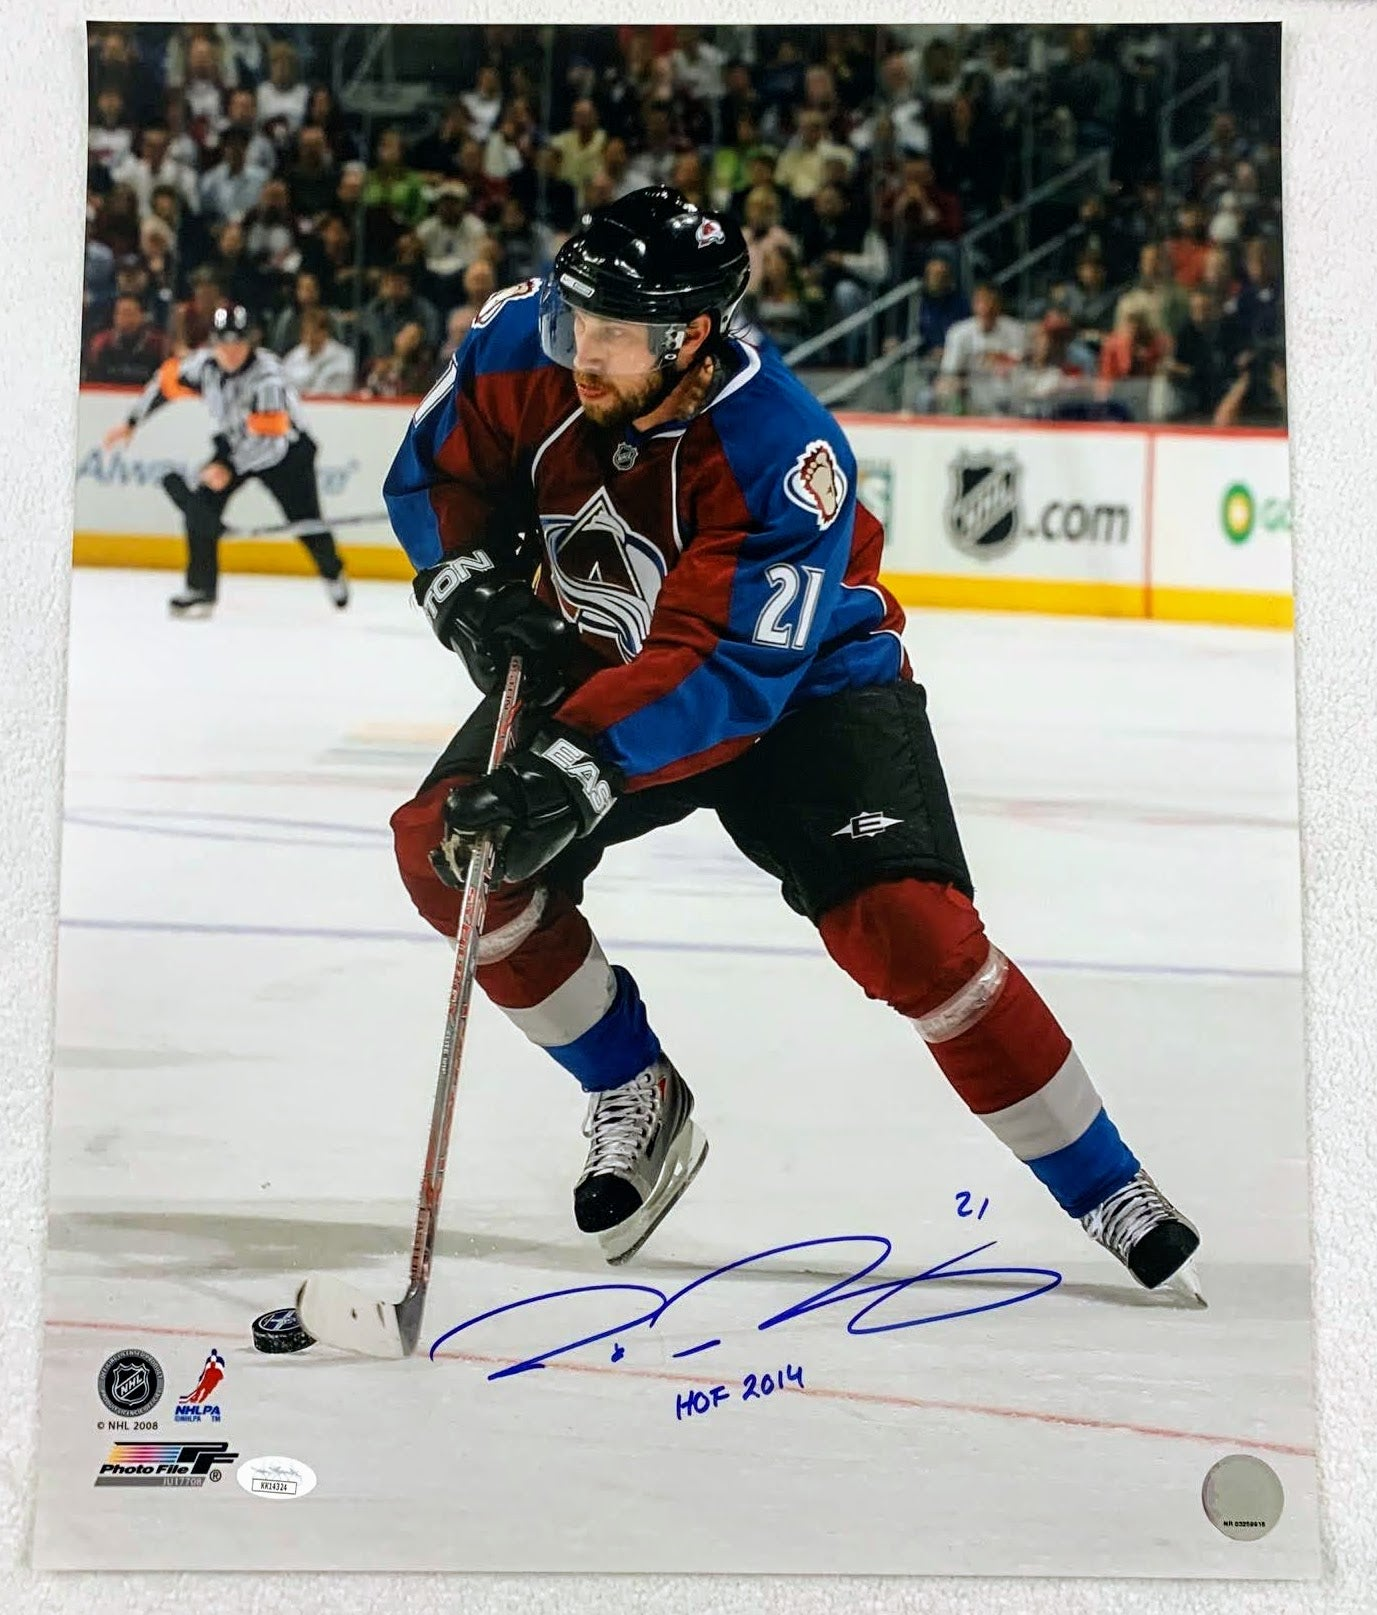 Peter Forsberg Autographed 16x20 Photo w/ HOF Inscription LSM JSA COA